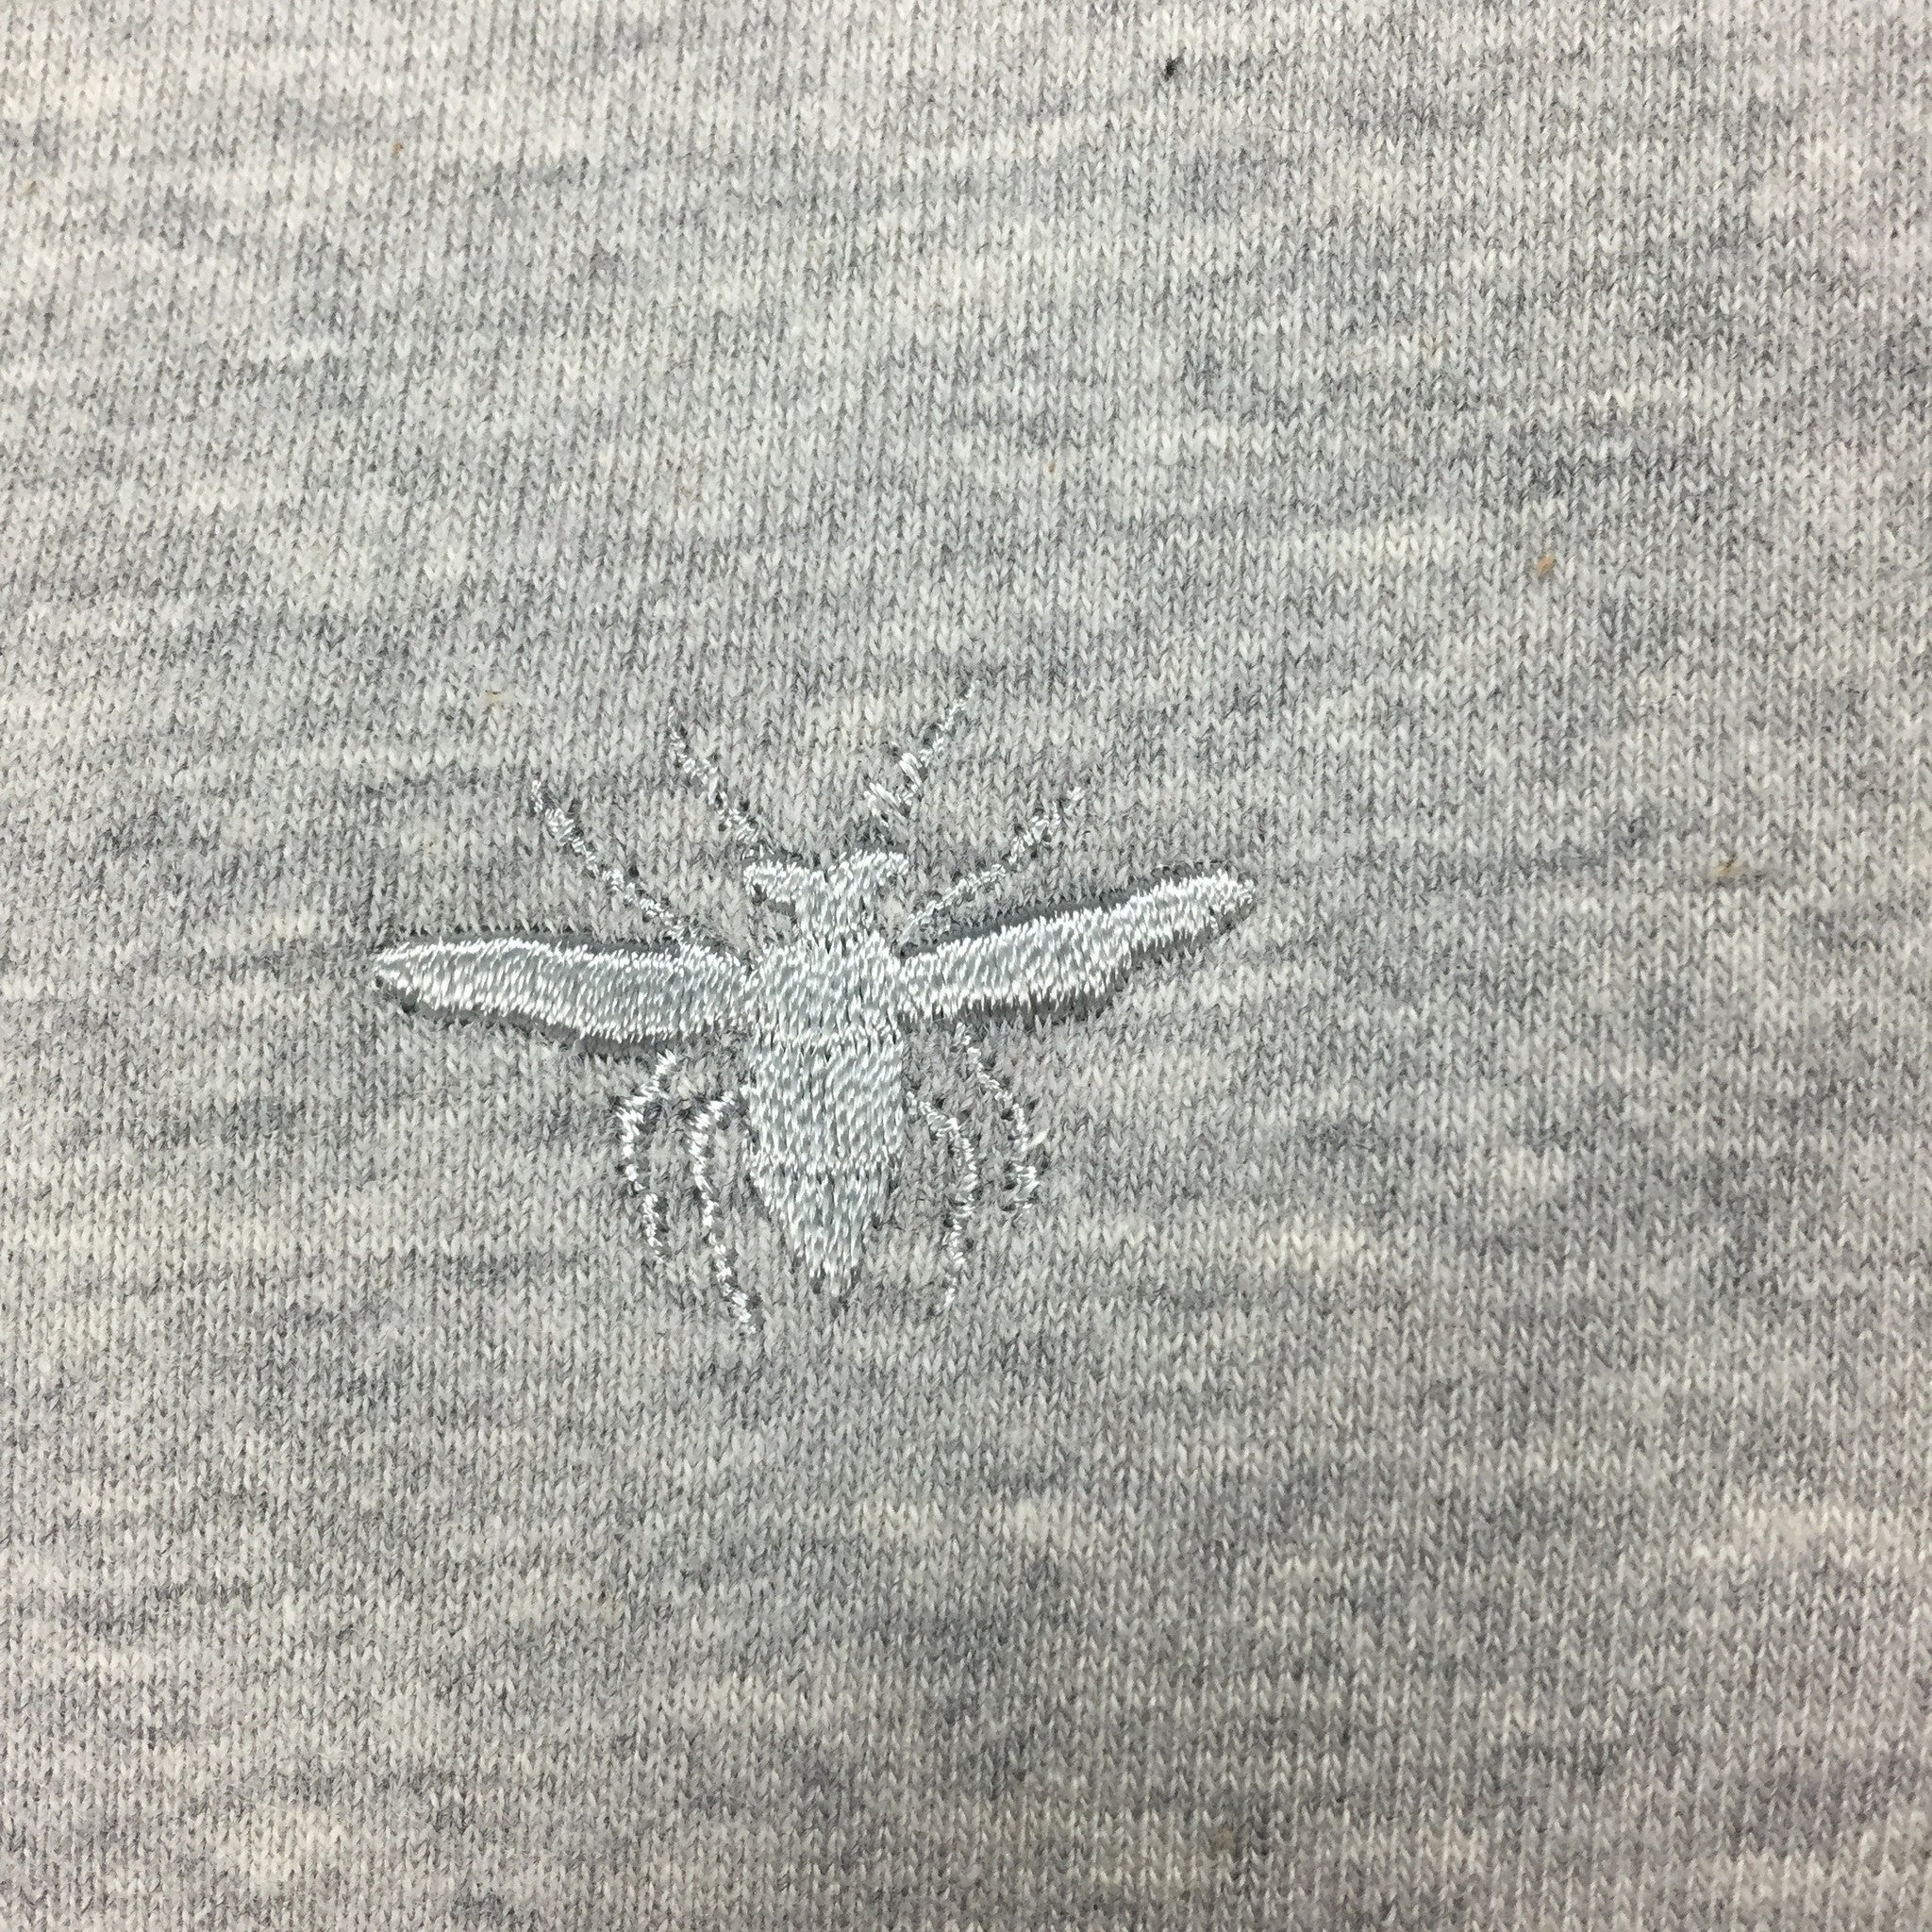 Dior - Bee Embroidered Fleece Shorts